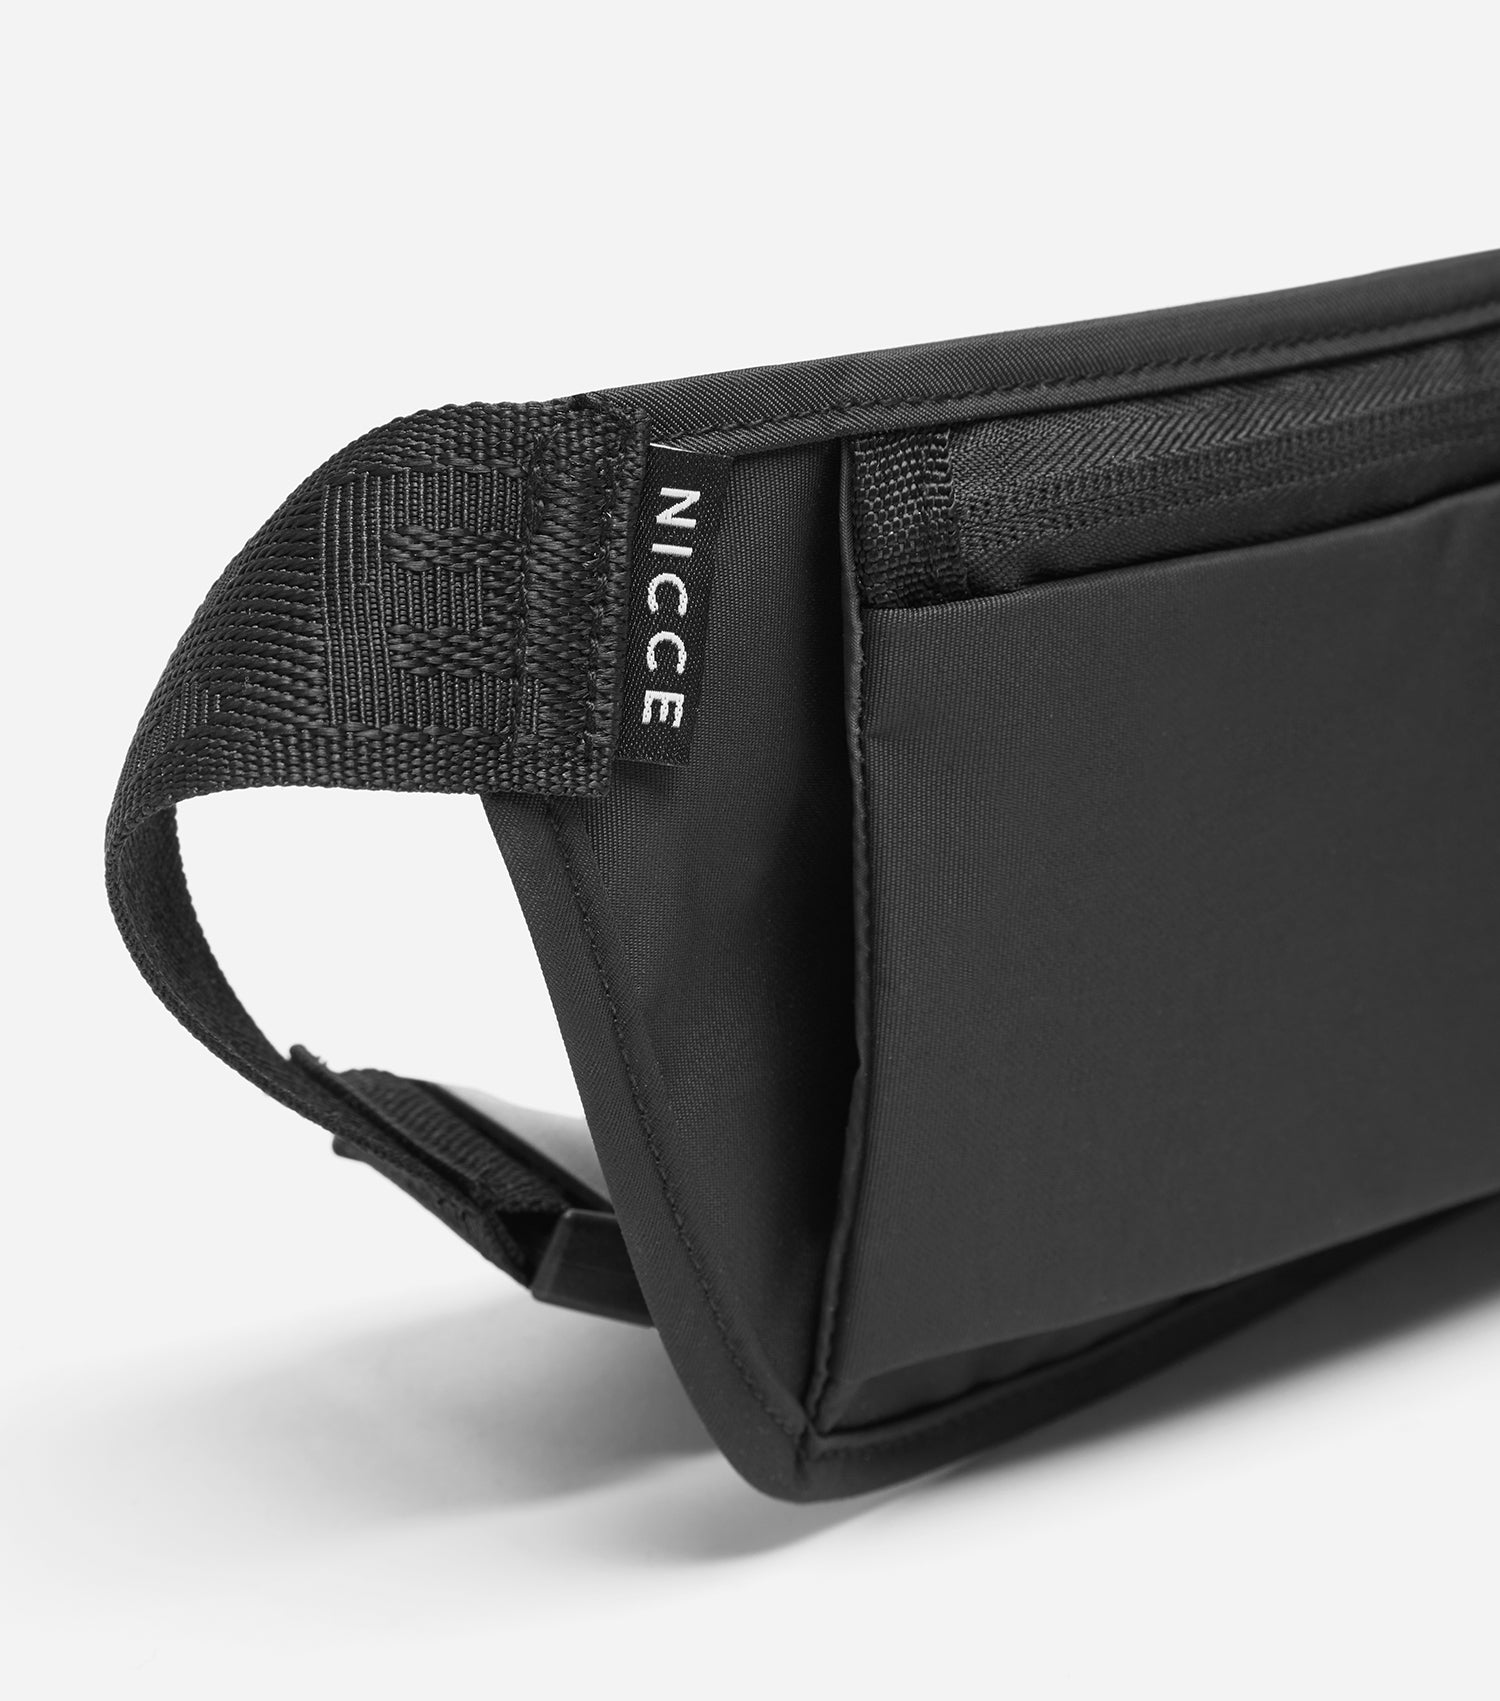 NICCE Zenit Bum Bag | Black, Bags